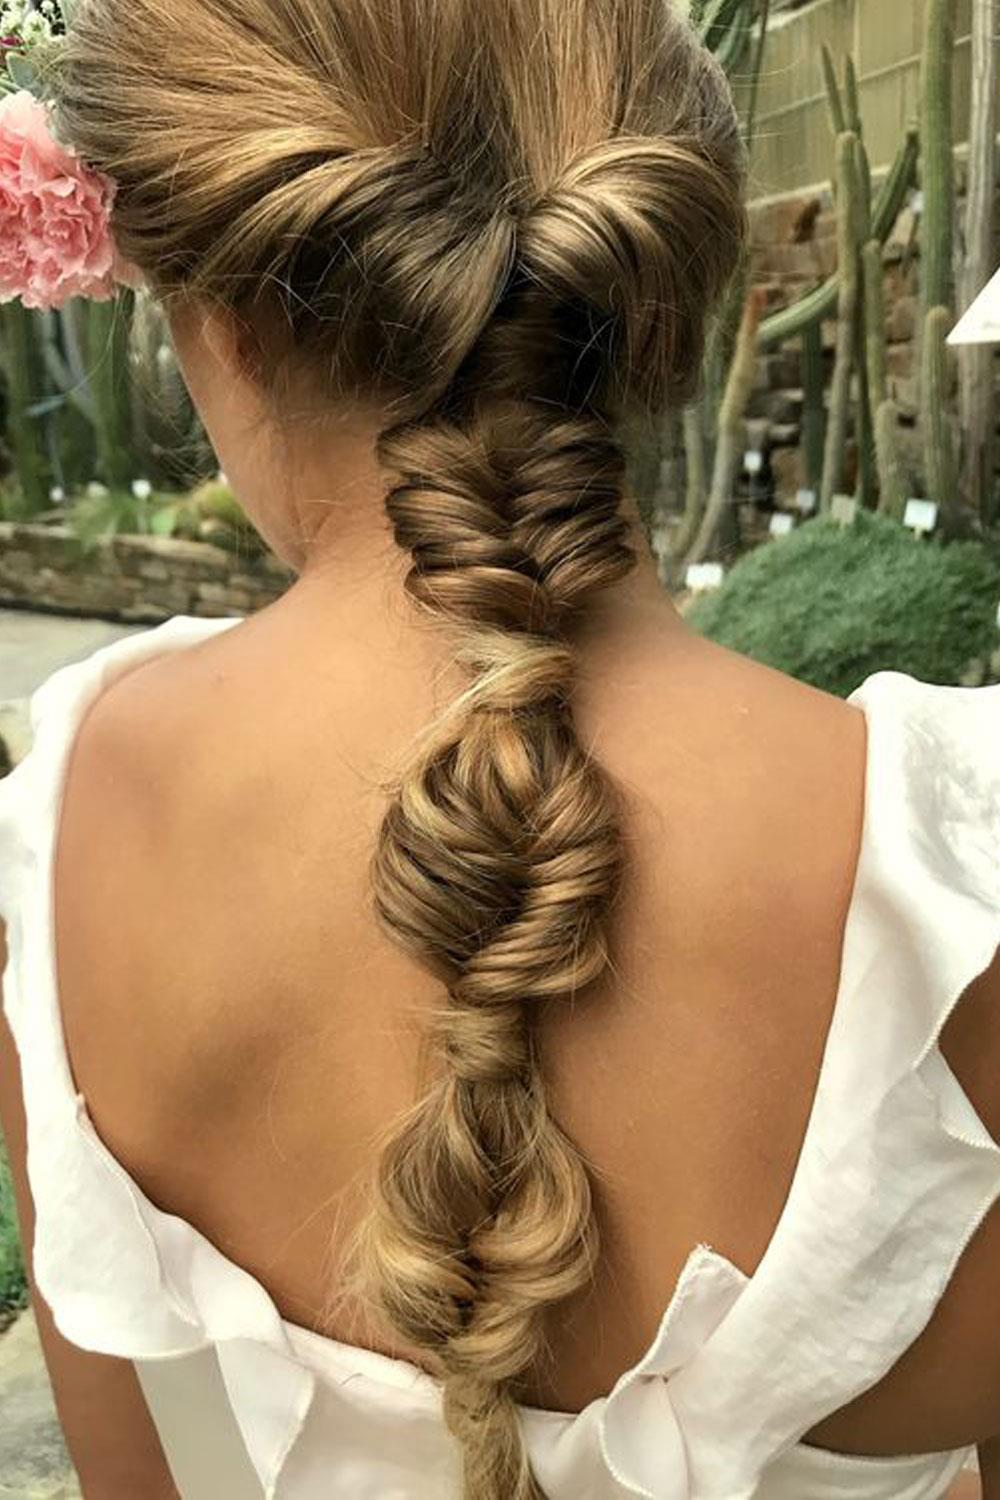 long hair hairstyles braid herringbone